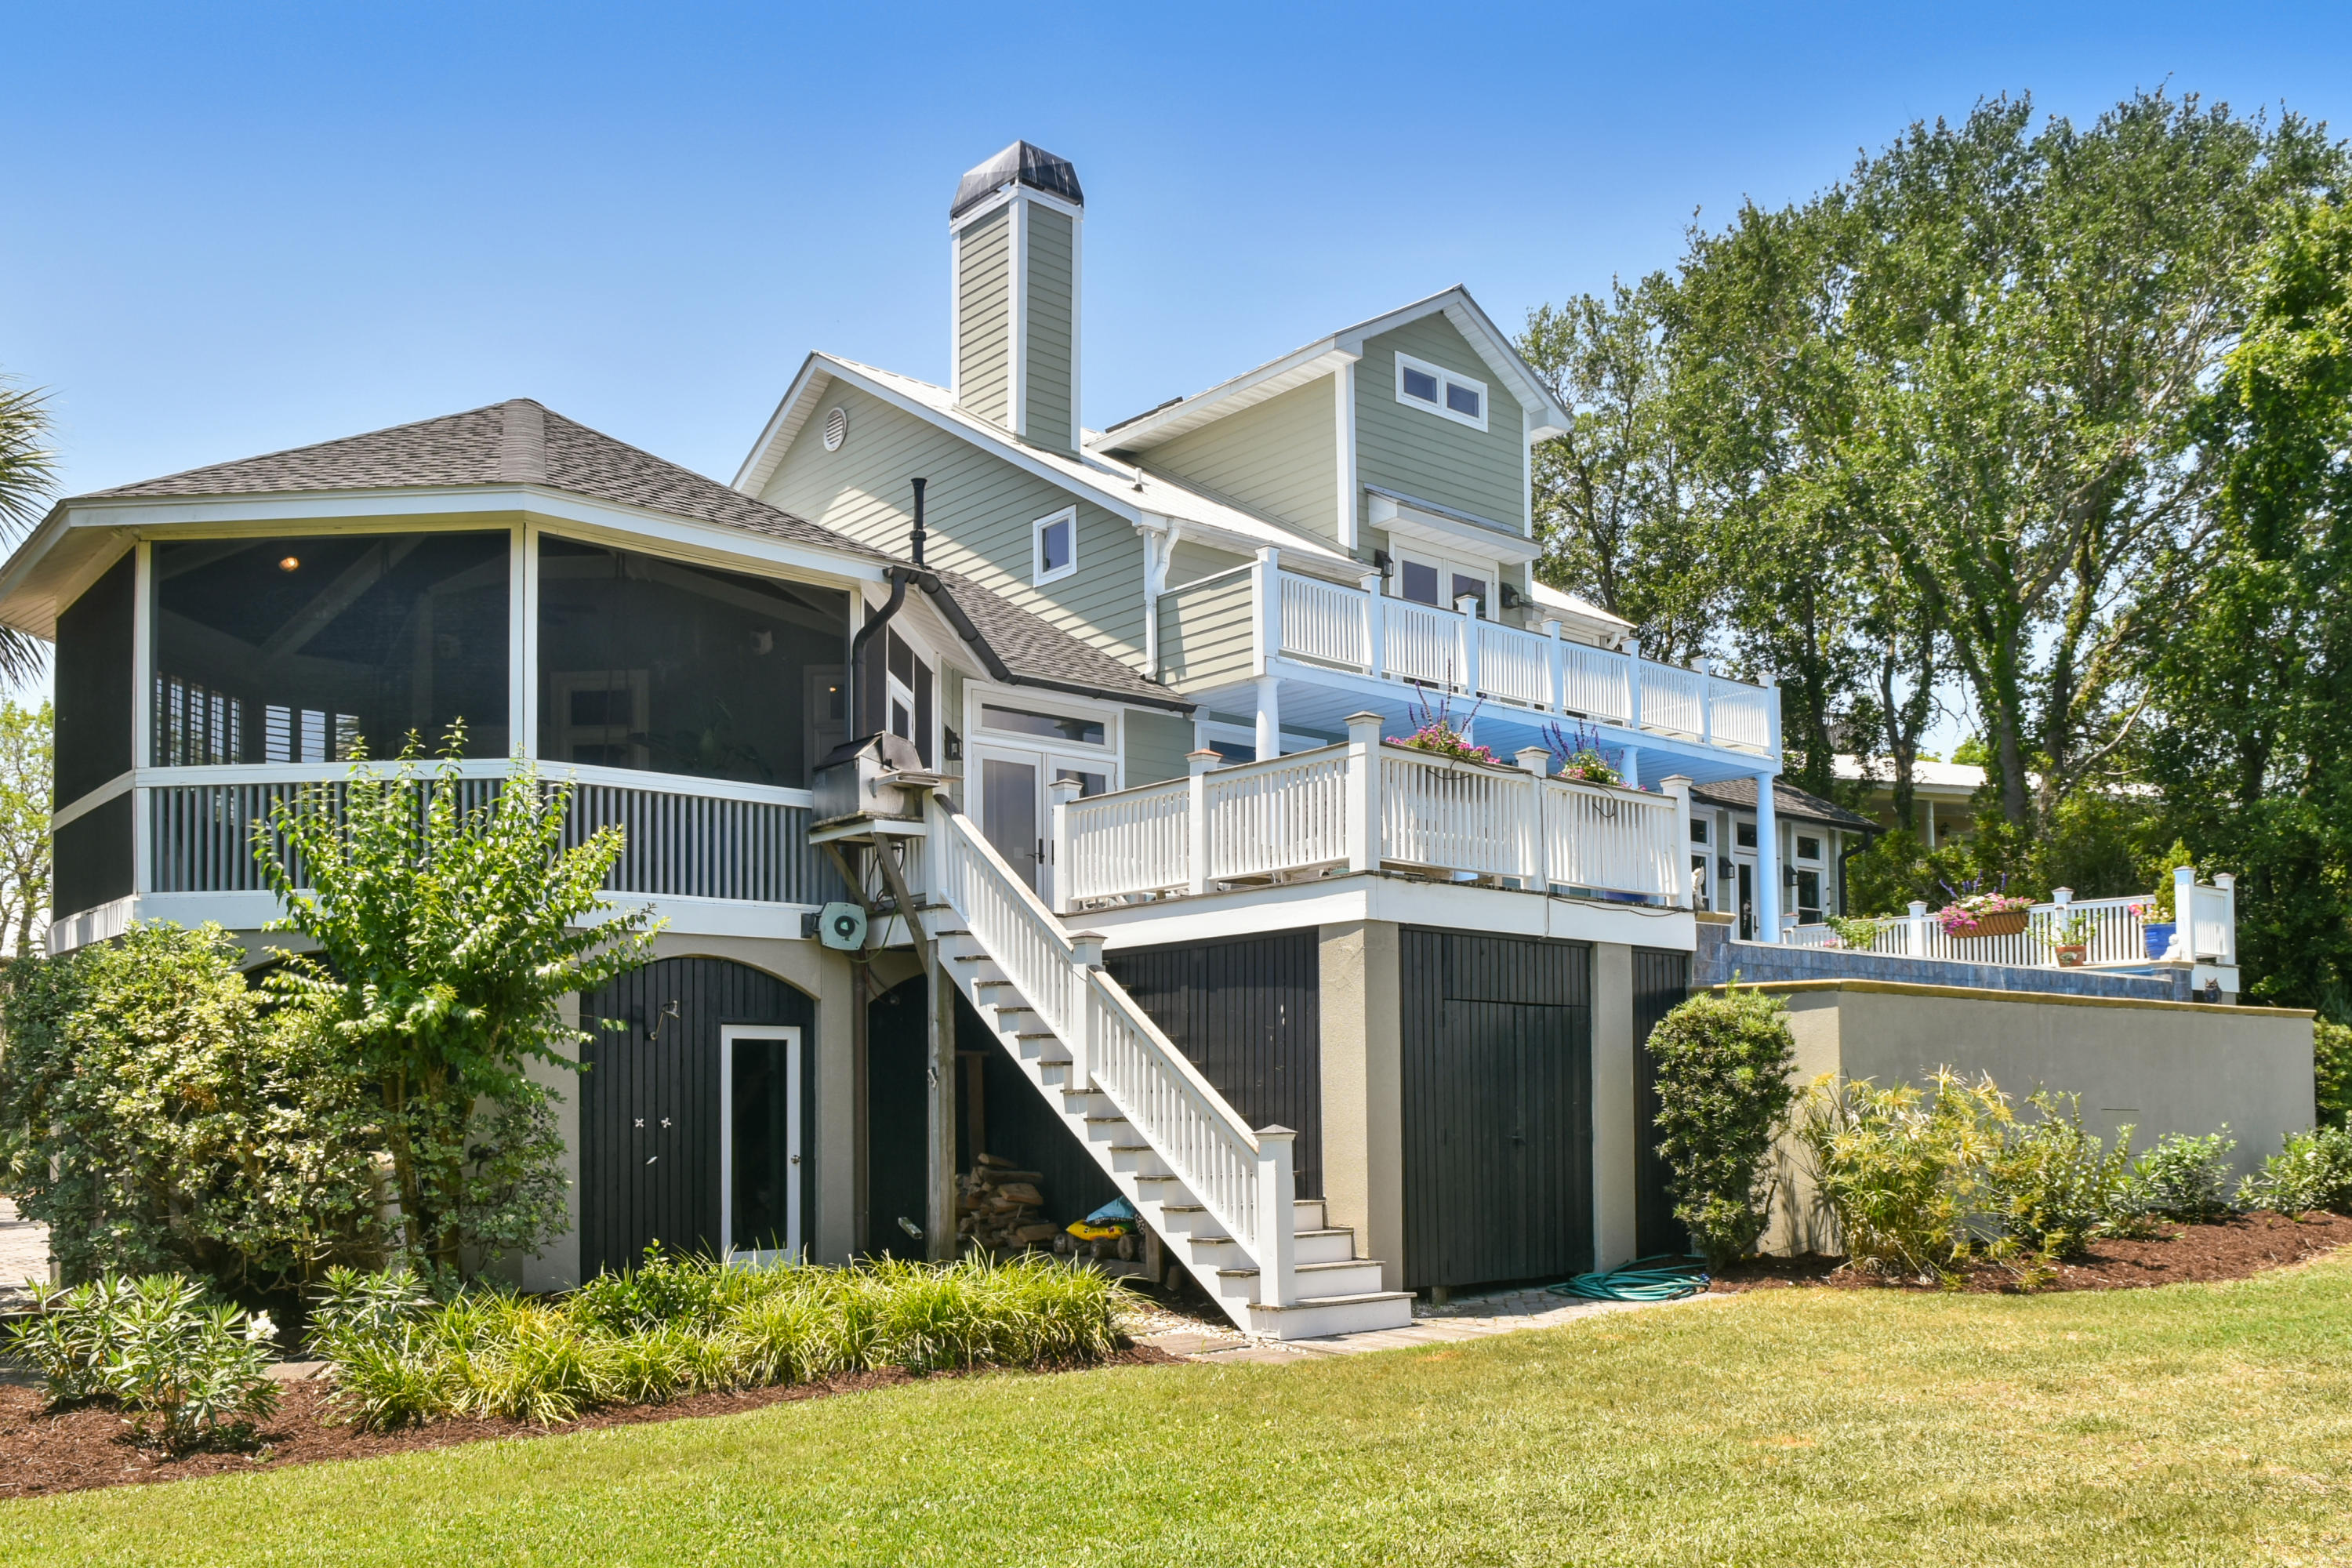 Sullivans Island Homes For Sale - 405 Station 12, Sullivans Island, SC - 27